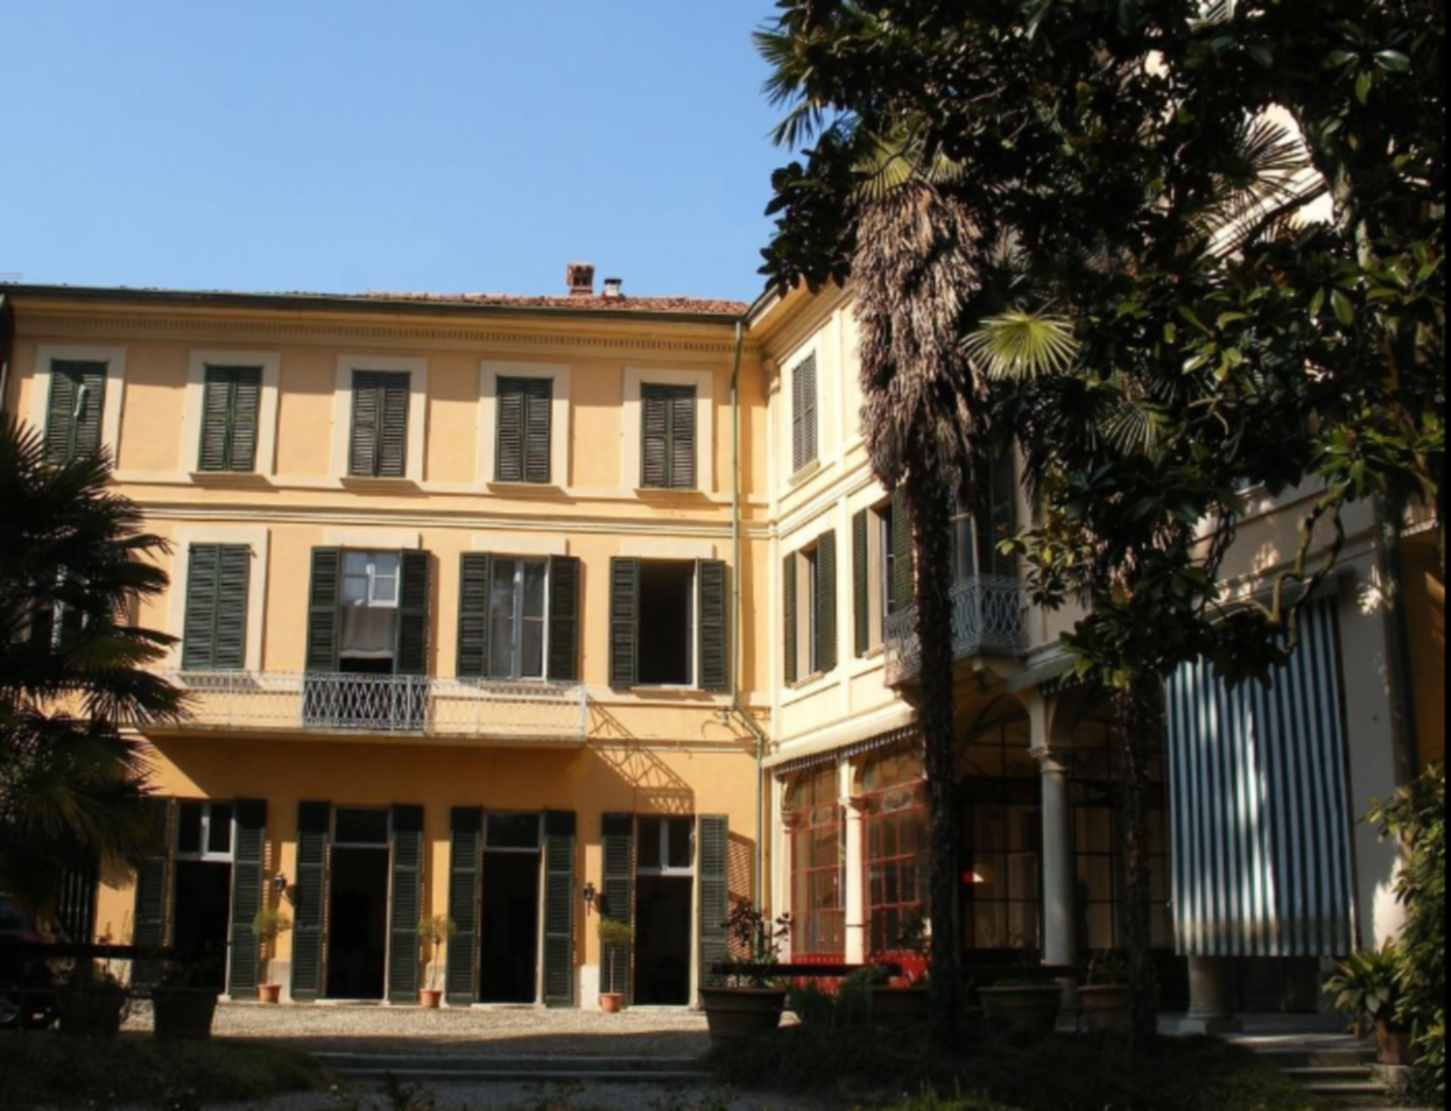 A group of people in front of a building at Villa Cavadini Relais.